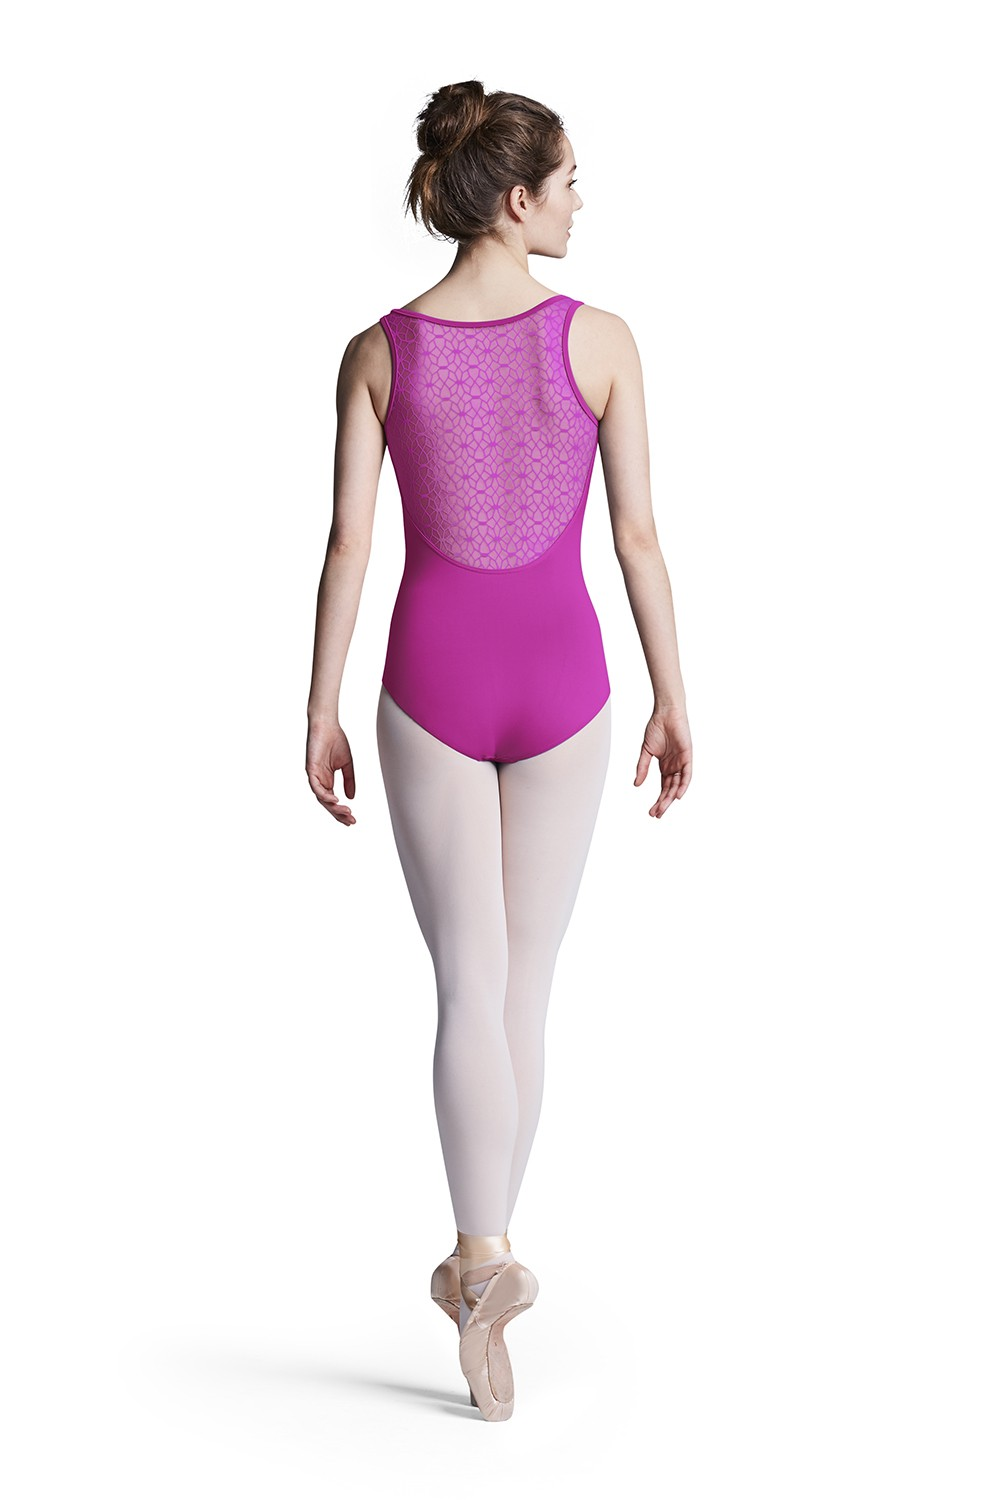 Ozanne Women's Dance Leotards